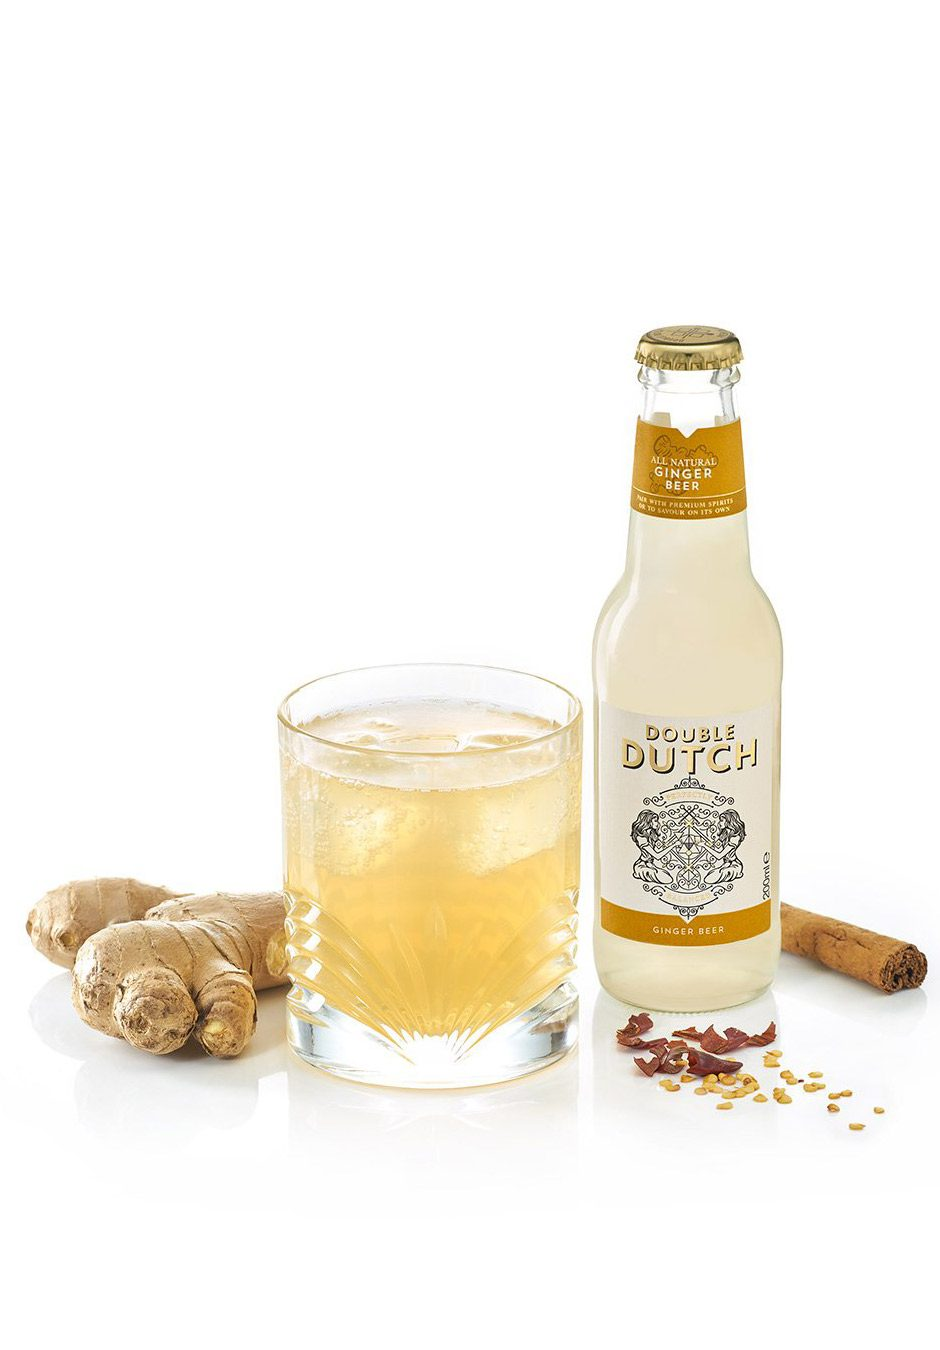 Double Dutch Ginger Beer | 200ml | Keico Drinks